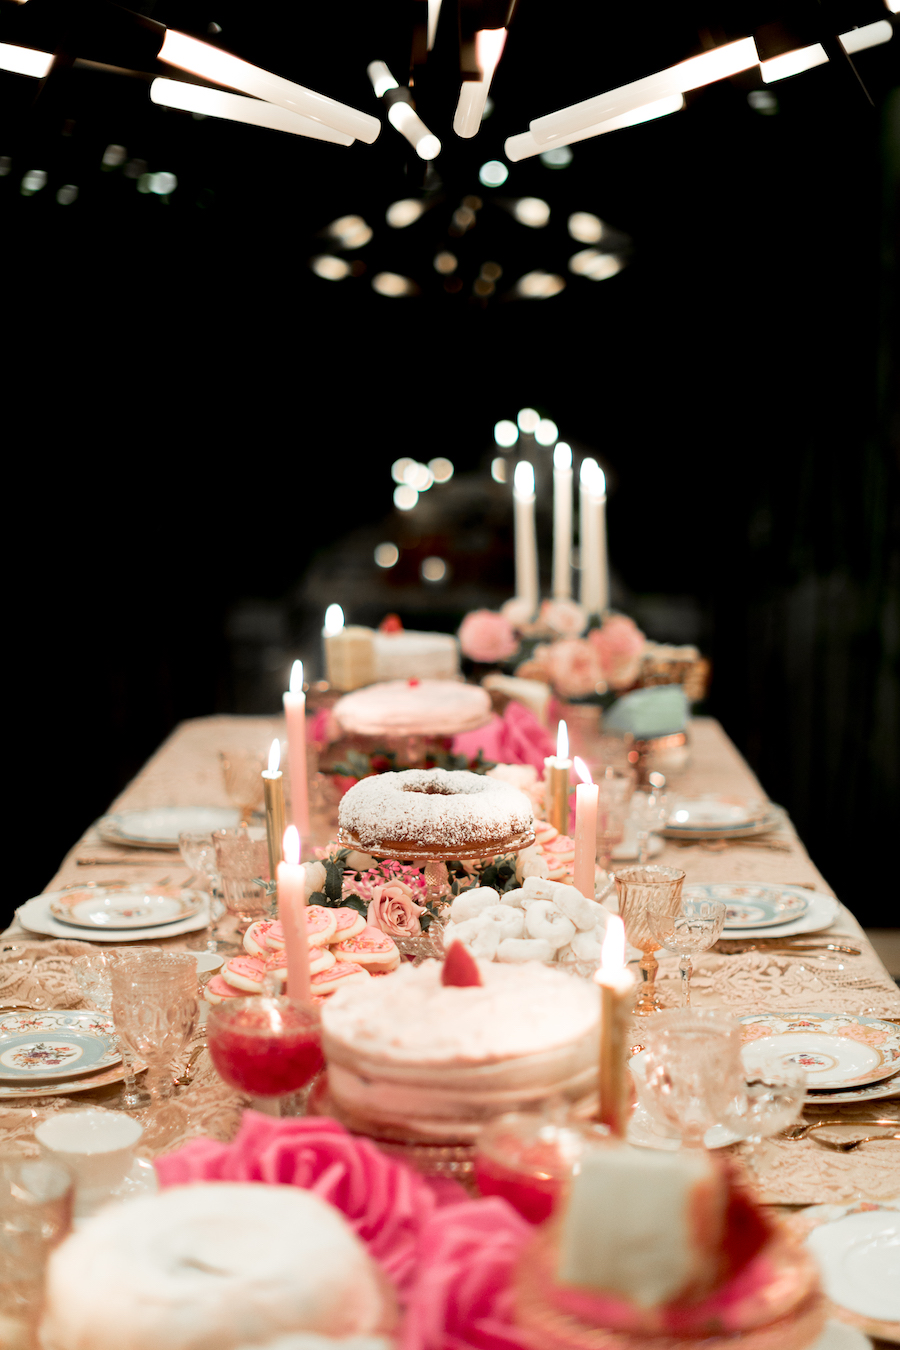 Amirah-kassem-let-them-eat-cake-hylah-white-special-events-rmine-katie-beverley-photography-26.jpg